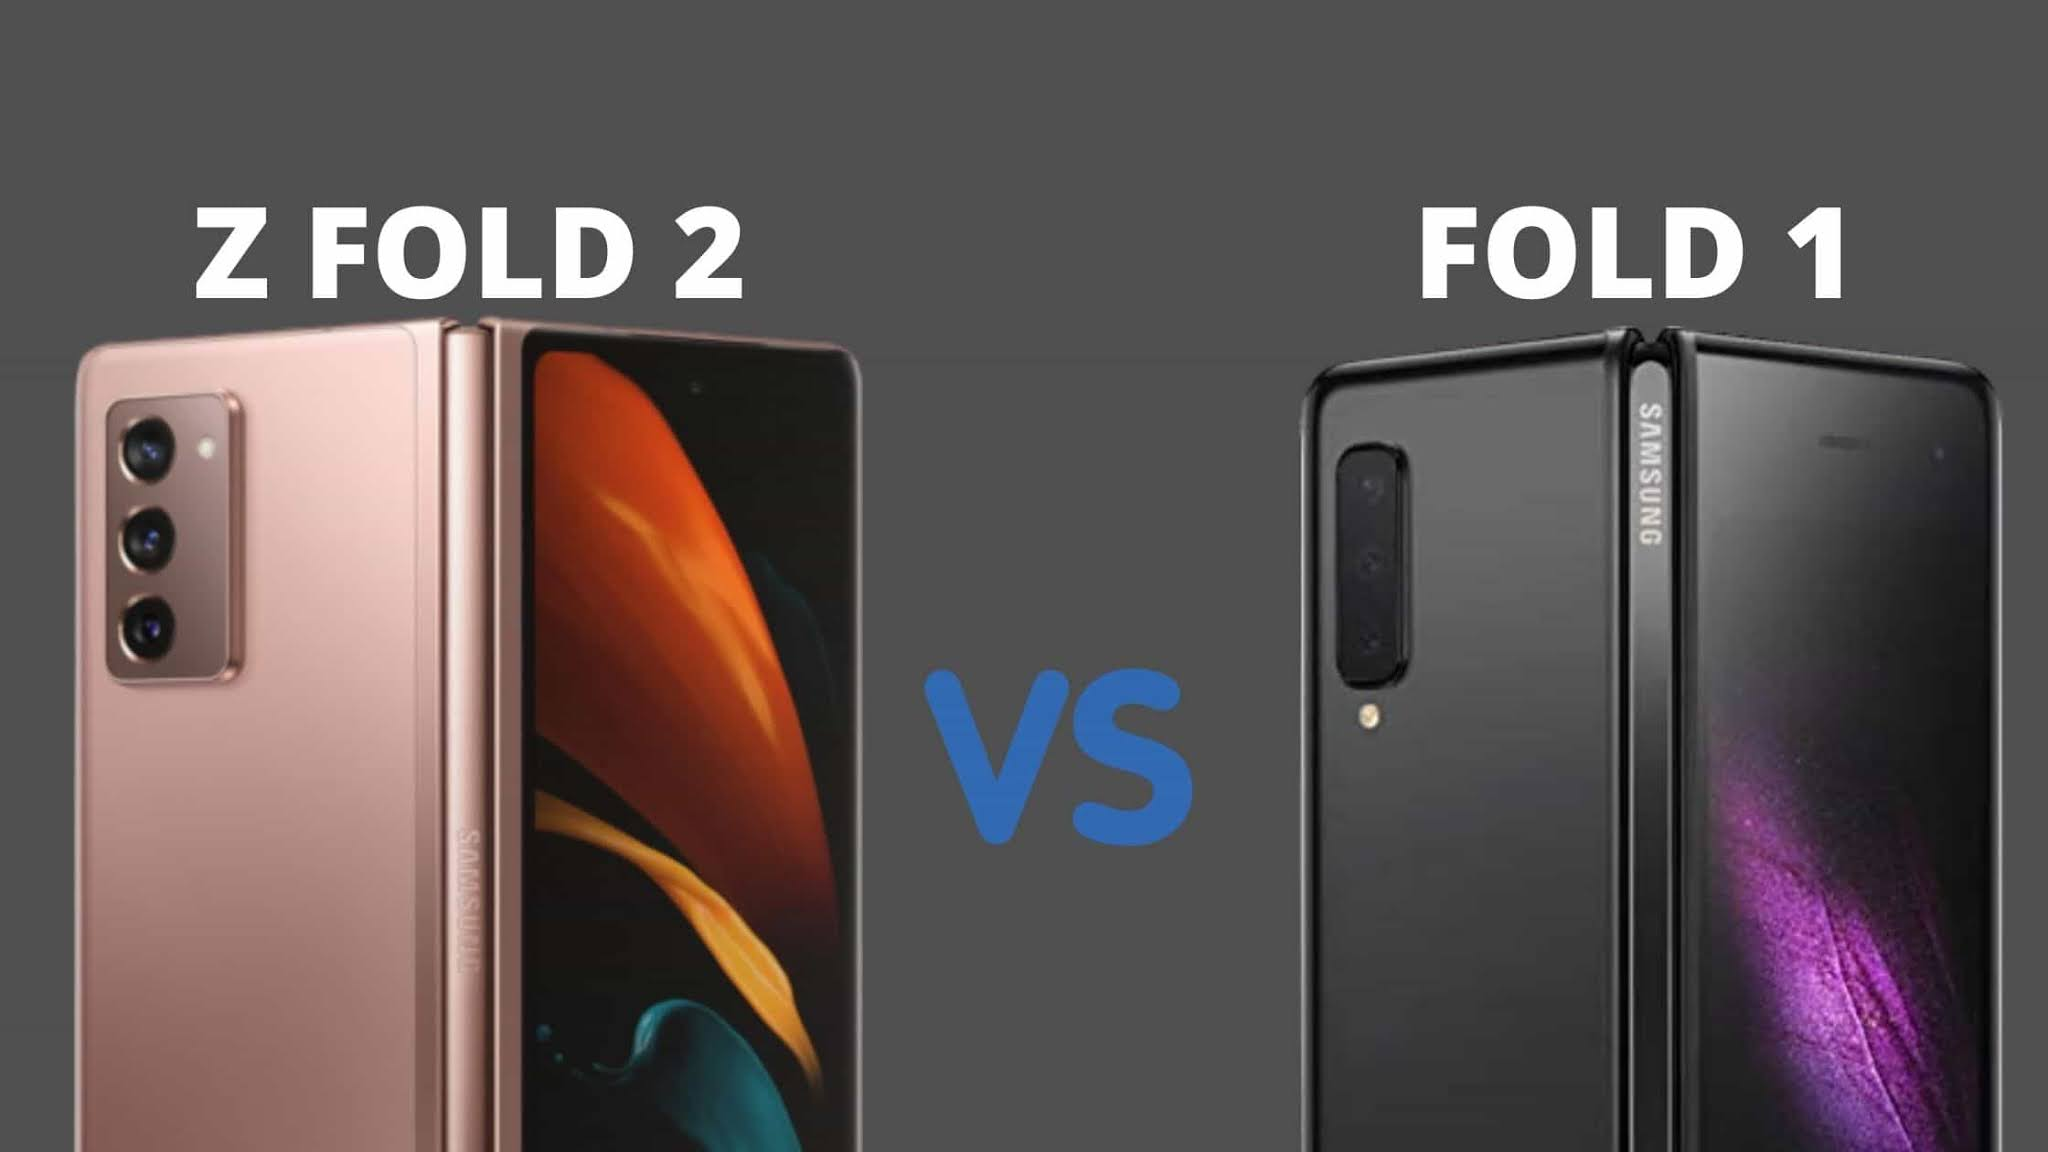 Comparing Galaxy Fold 1 and Galaxy Z Fold 2